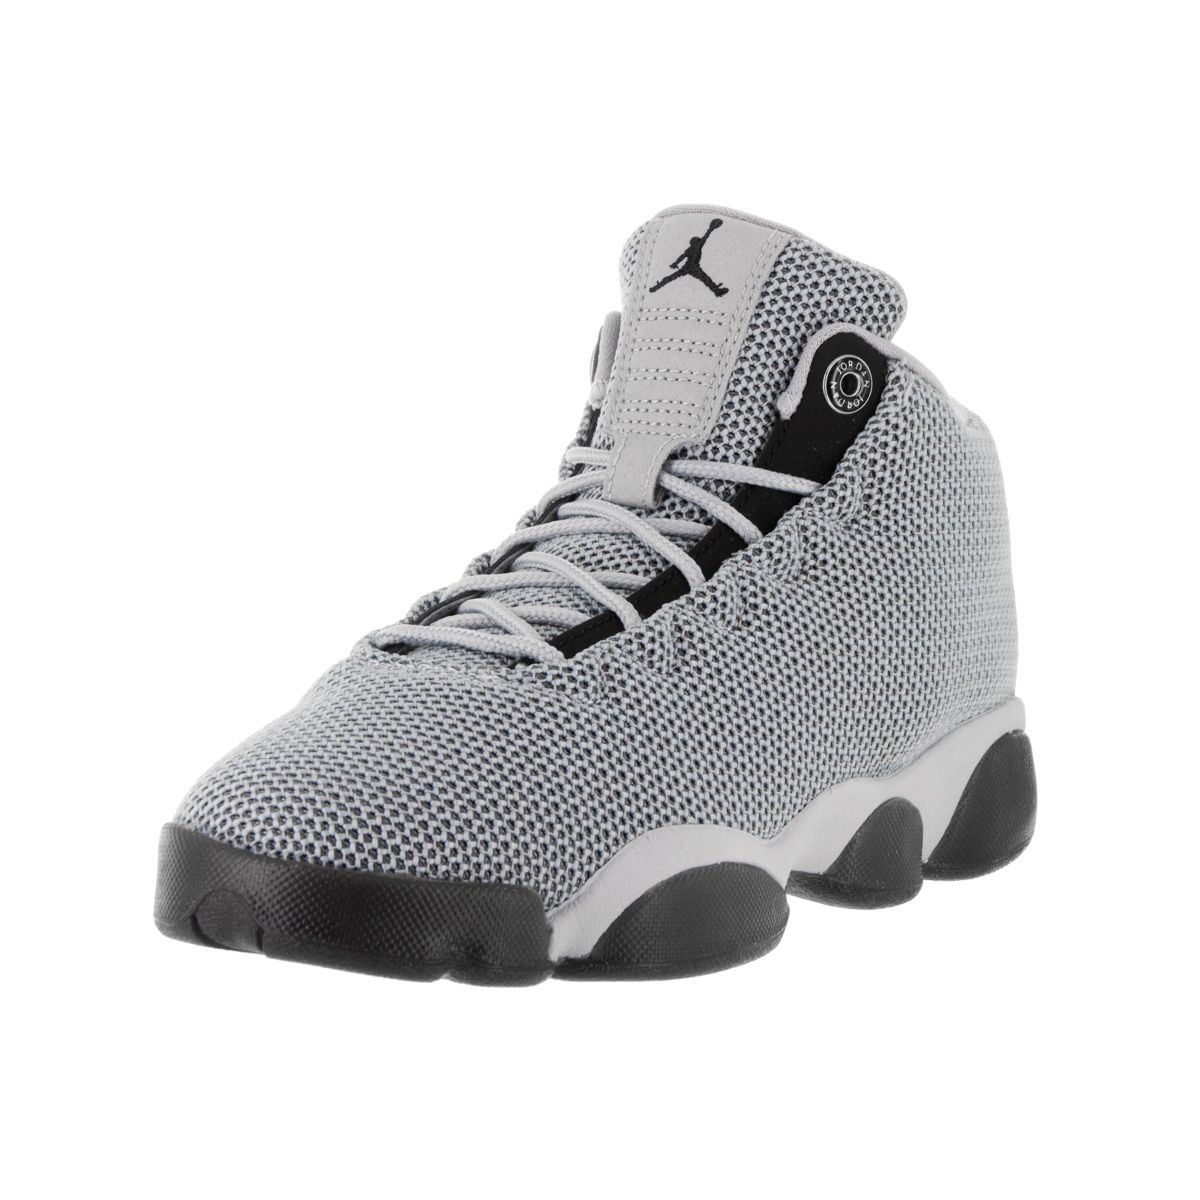 jordan horizon low dark grey